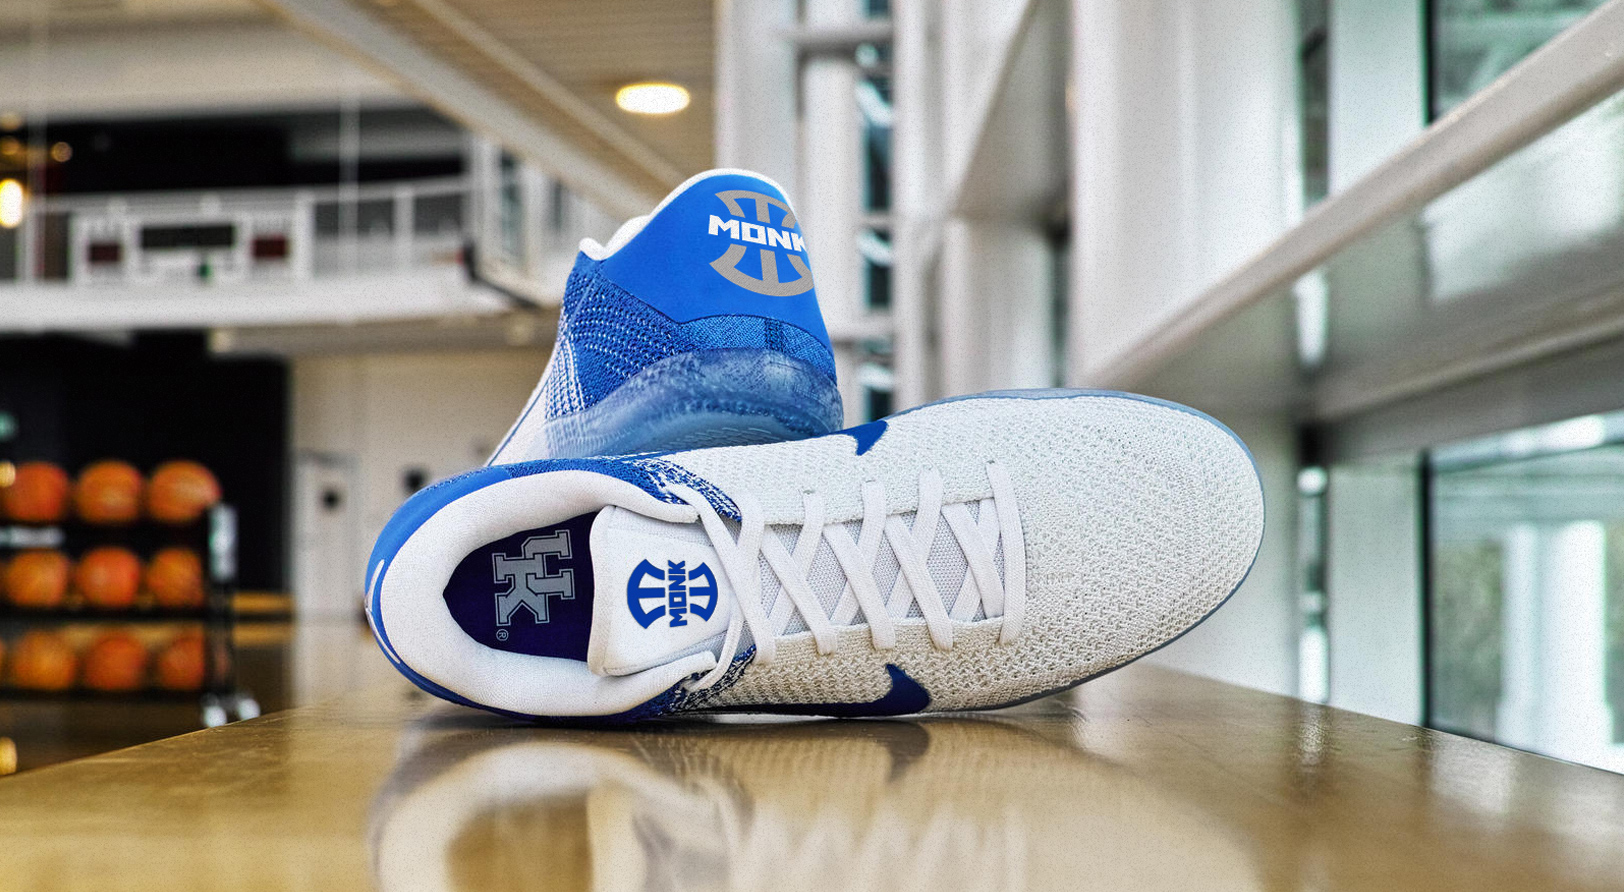 Sports Branding: Malik Monk Athlete Brand Identity on Kobe Sneakers